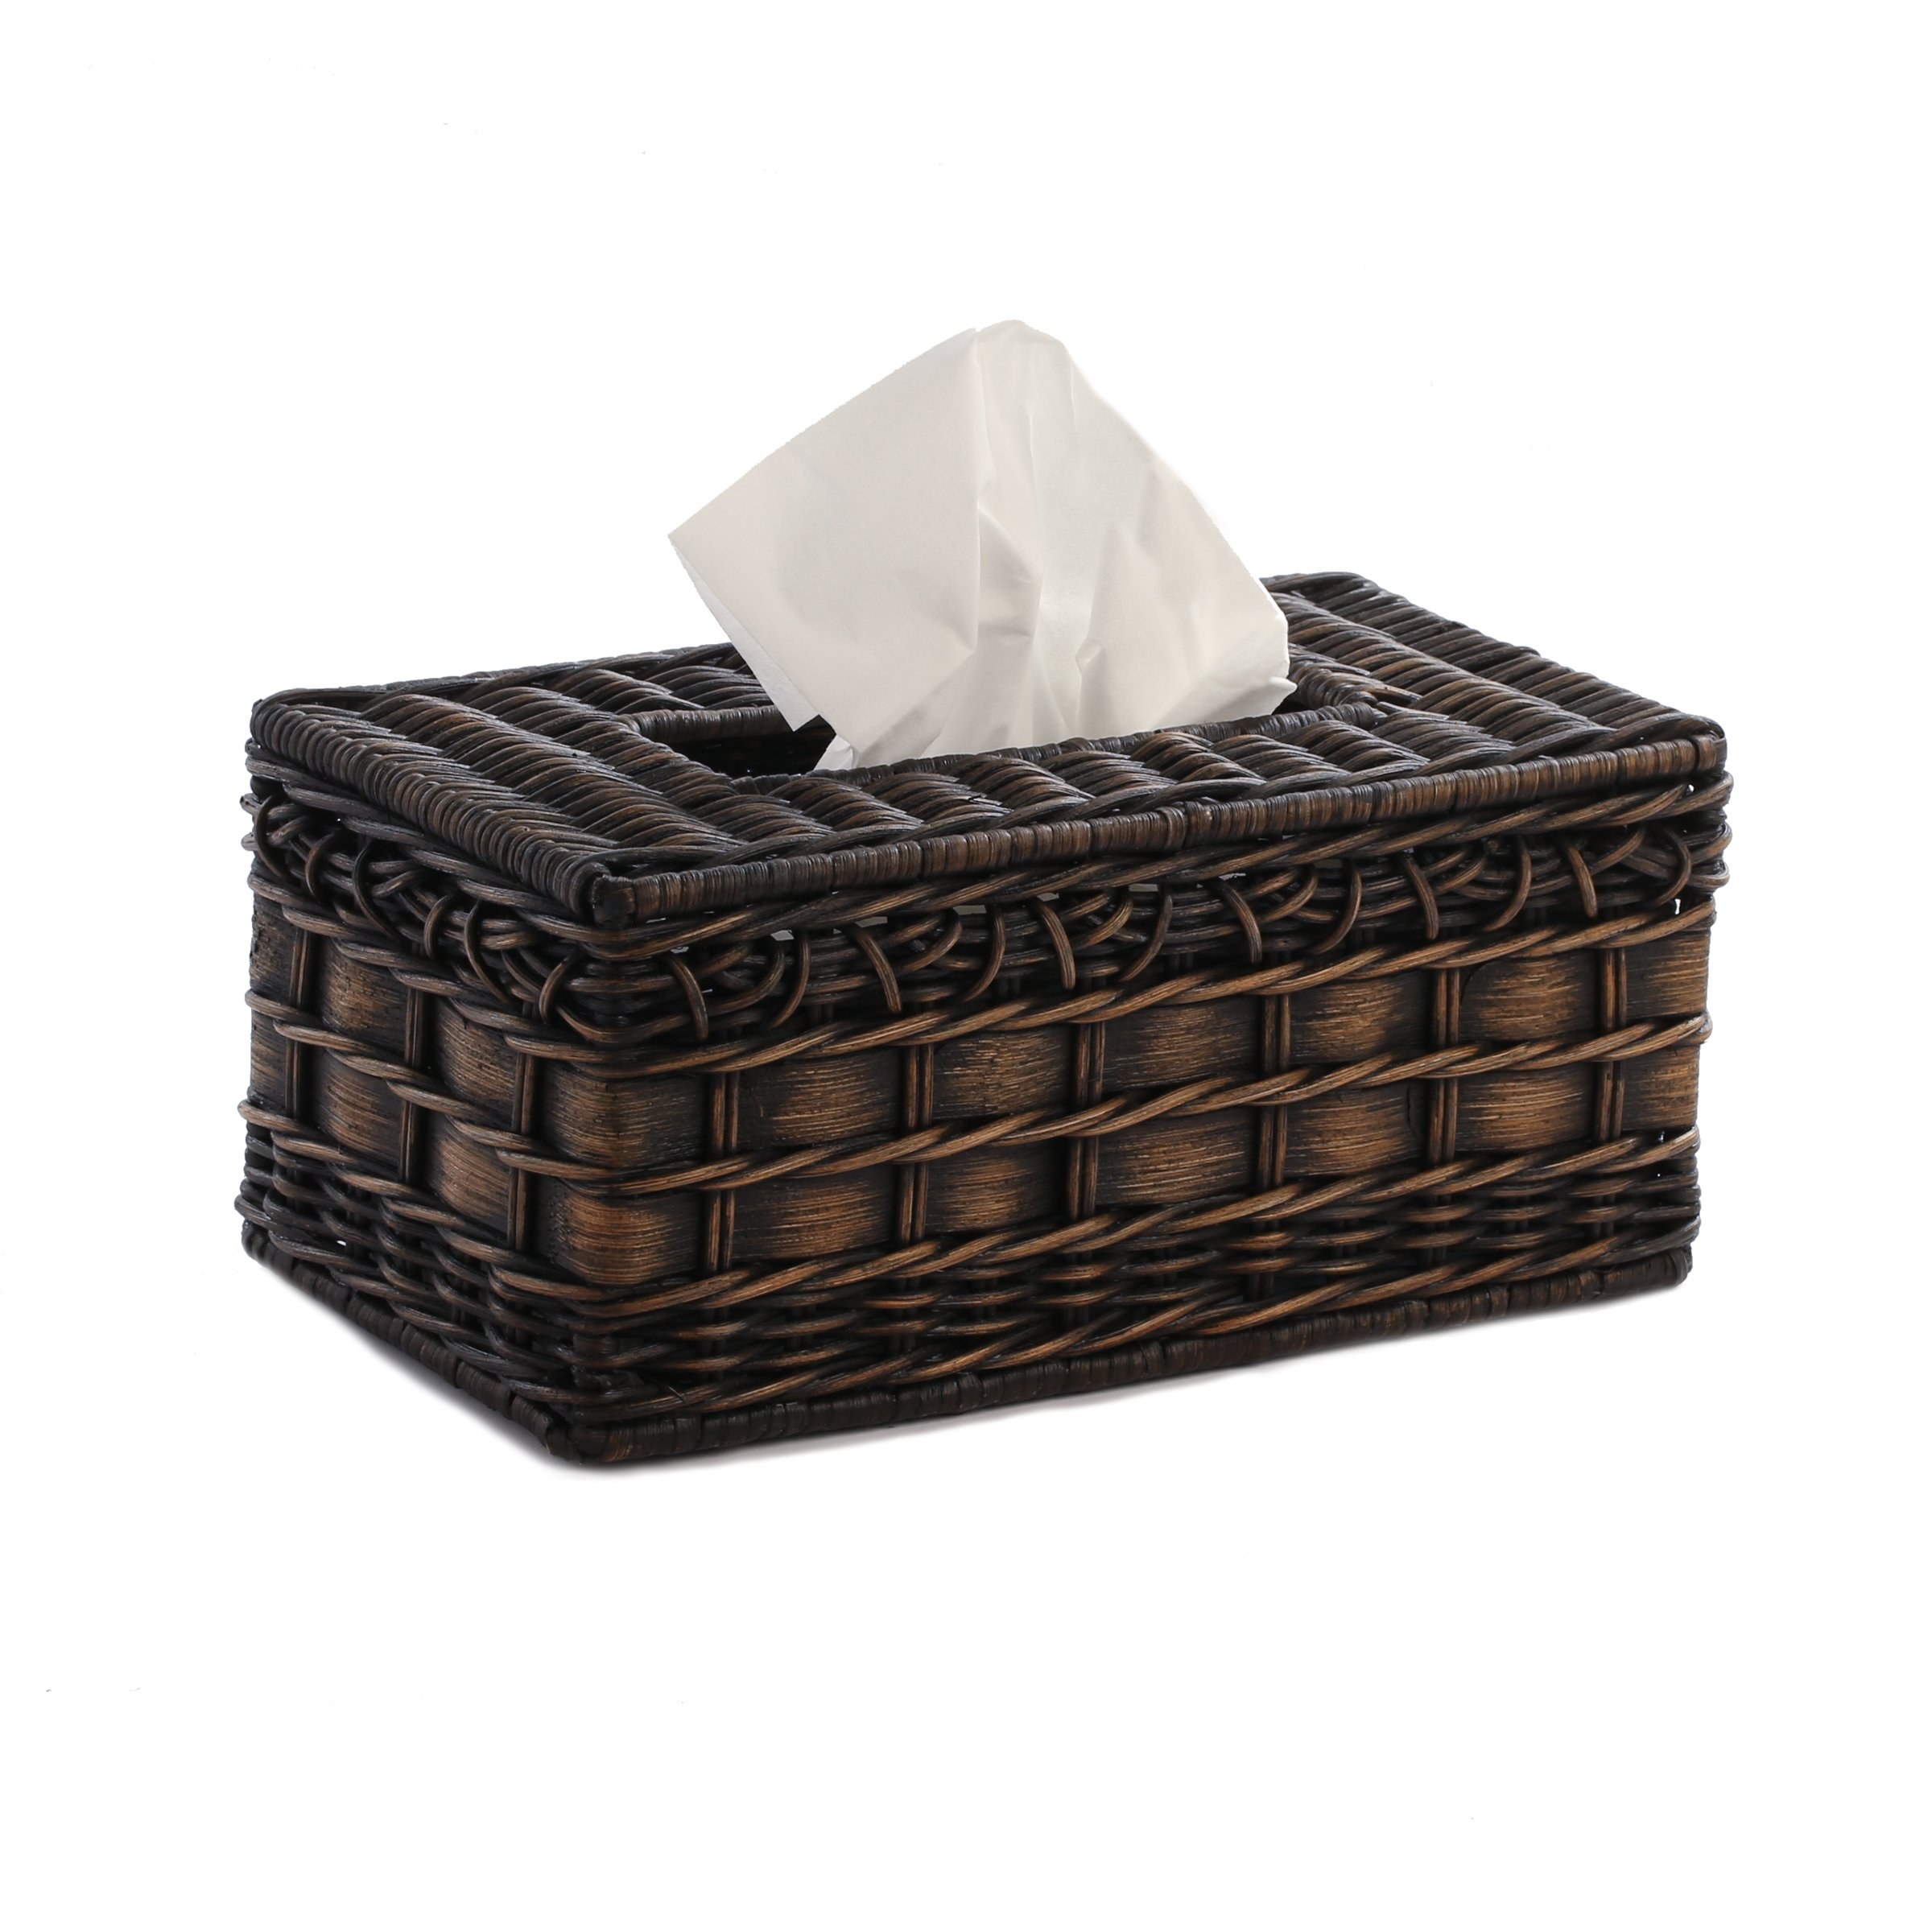 The Basket Lady Wicker Large Tissue Box Cover, 10.75 in L x 6 in W x 4.5 in H, Antique Walnut Brown